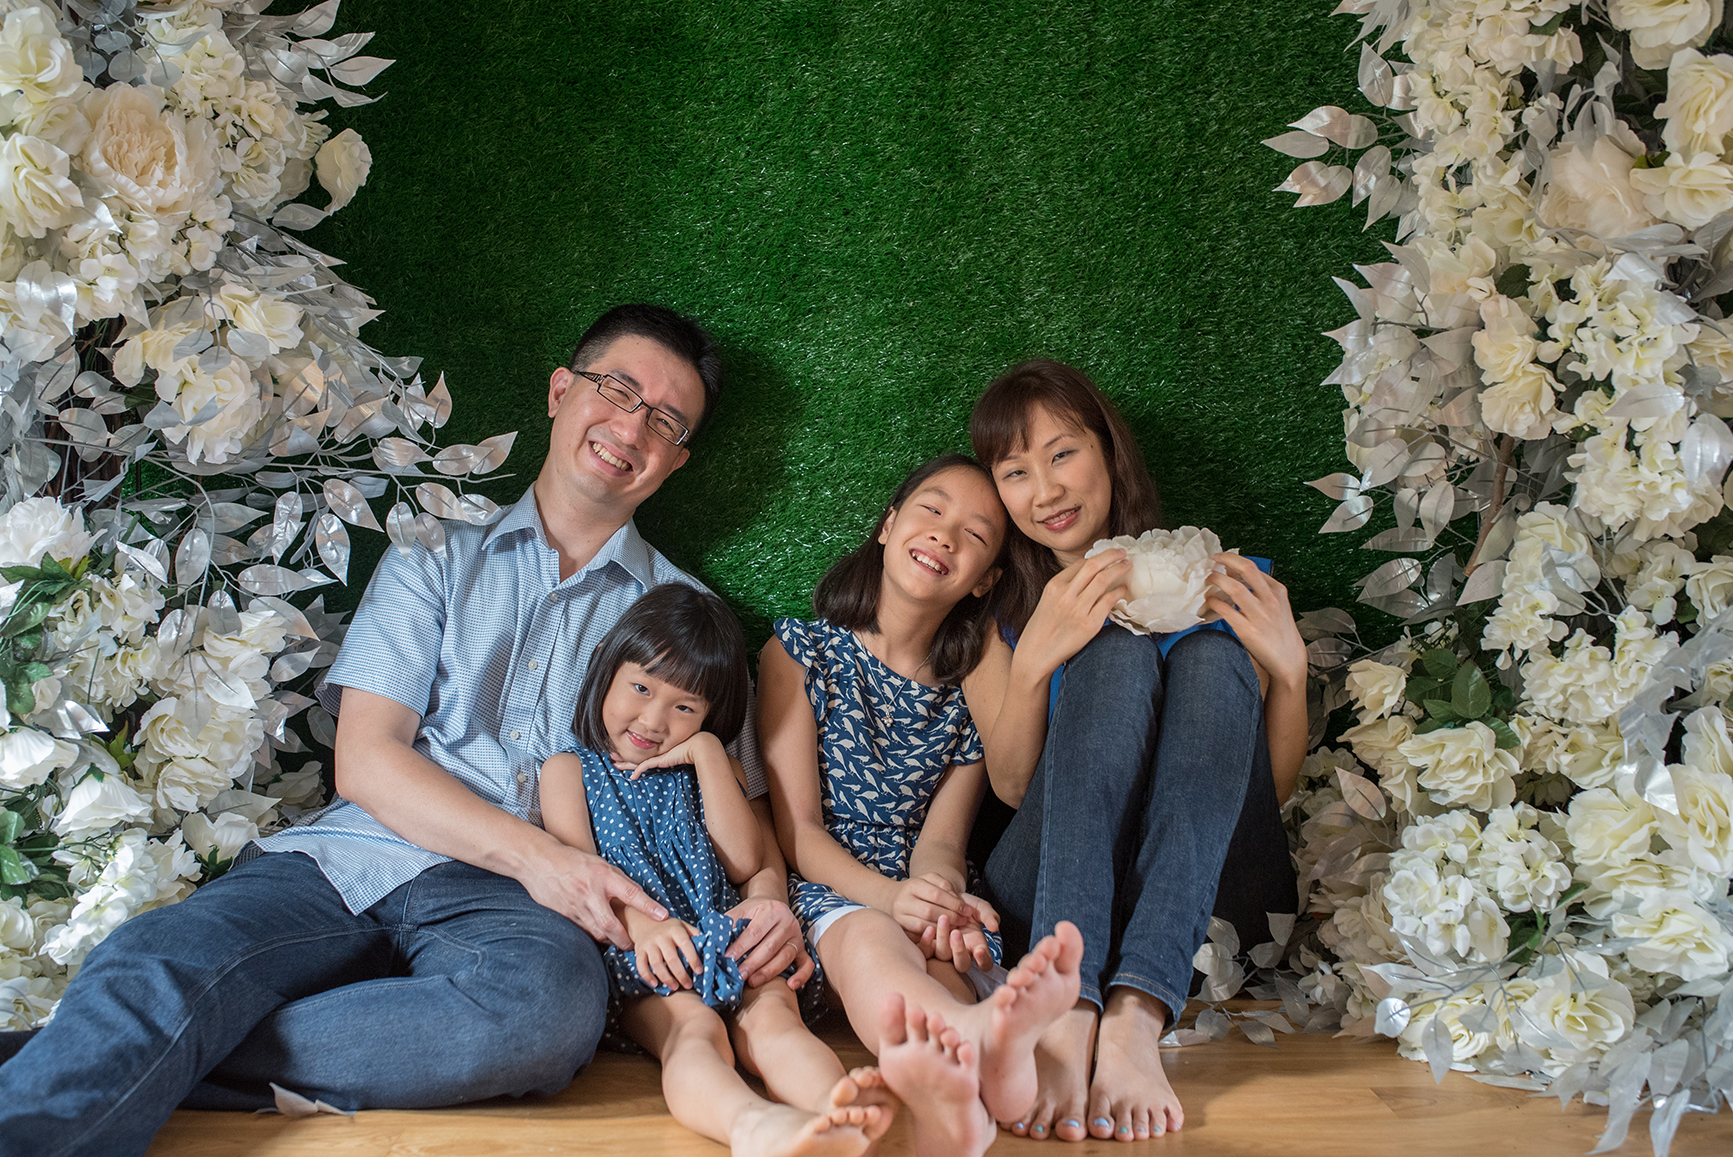 natural-light-family-portrait-02